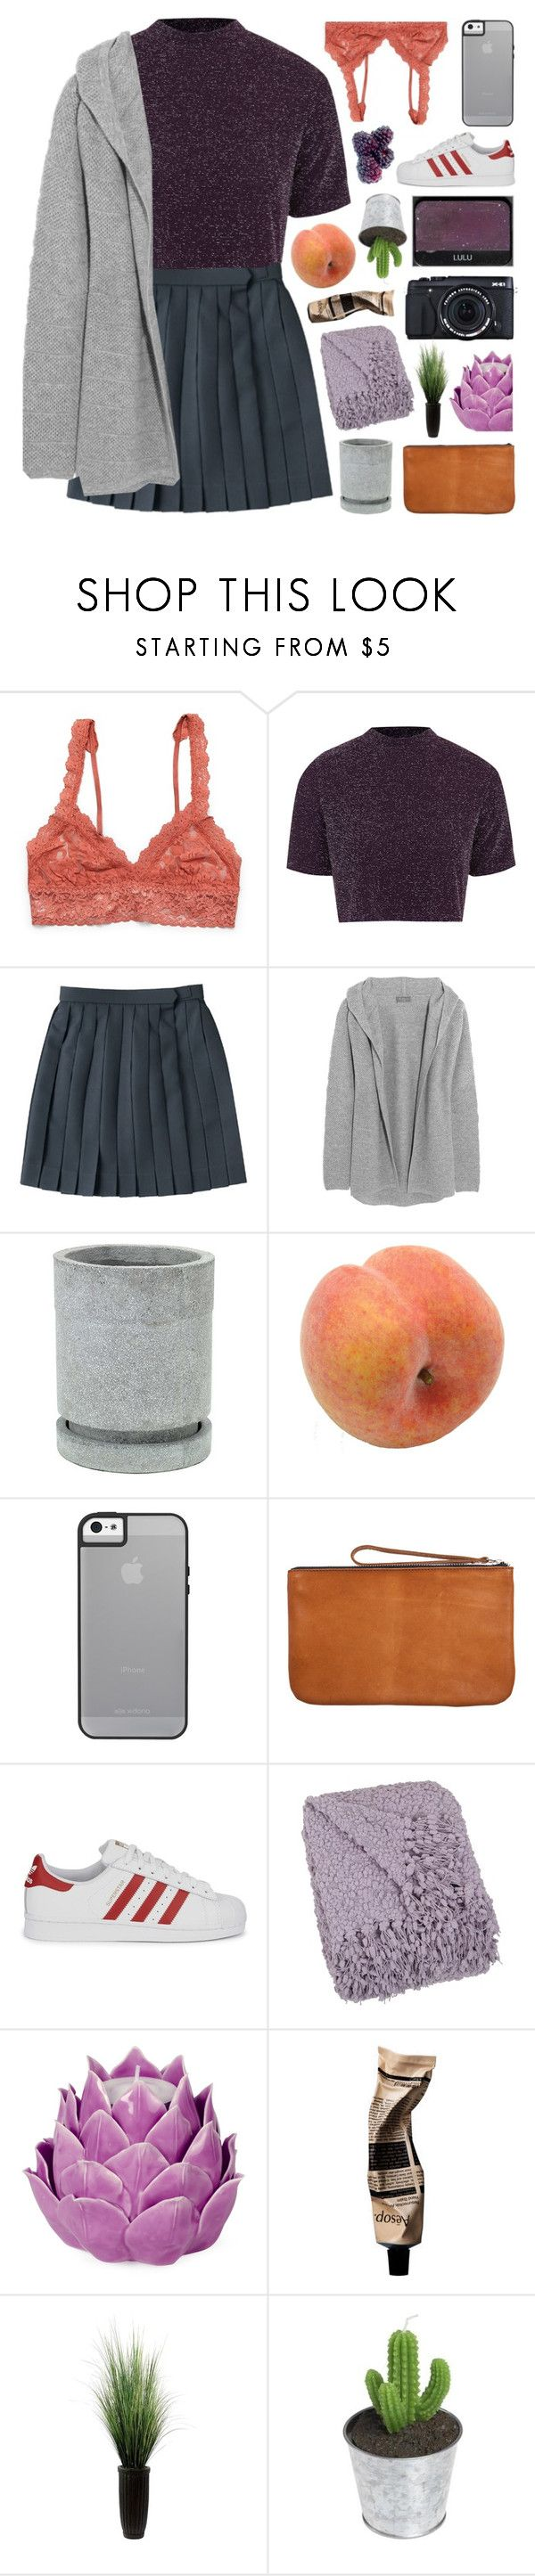 """""""THIS IS THE SONG FOR NO ONE ⚘"""" by d0ntblink ❤ liked on Polyvore featuring Hanky Panky, Oh My Love, N.Peal, Pavilion Broadway, Fujifilm, Pieces, adidas Originals, NARS Cosmetics, Zara Home and Aromatique"""